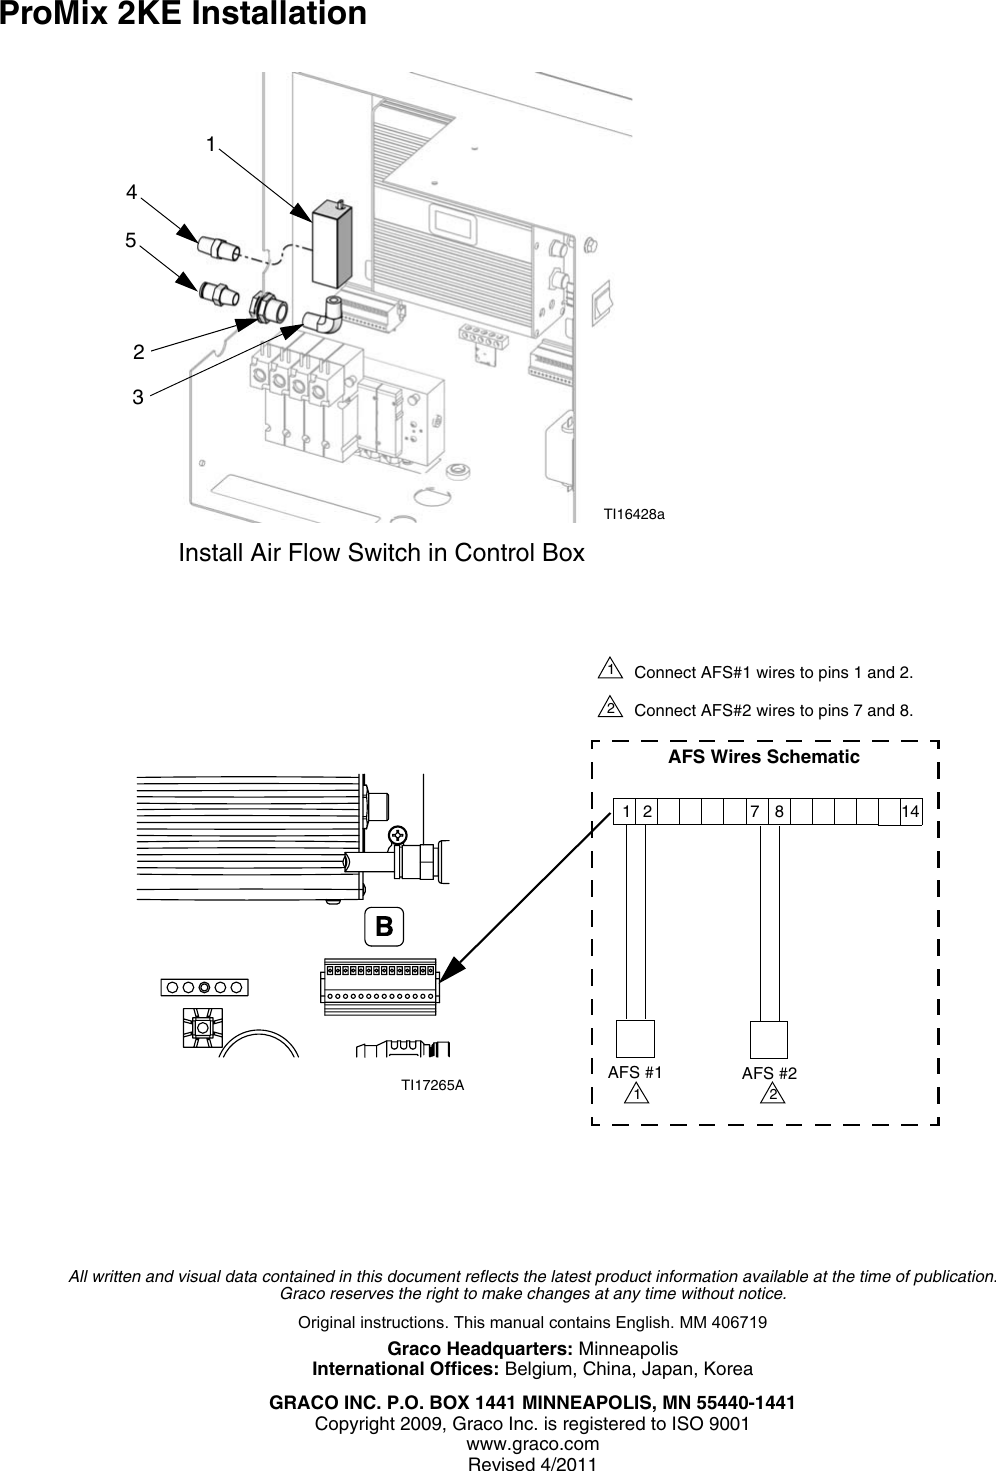 Page 2 of 2 - Graco Graco-406719B-15T632-Air-Flow-